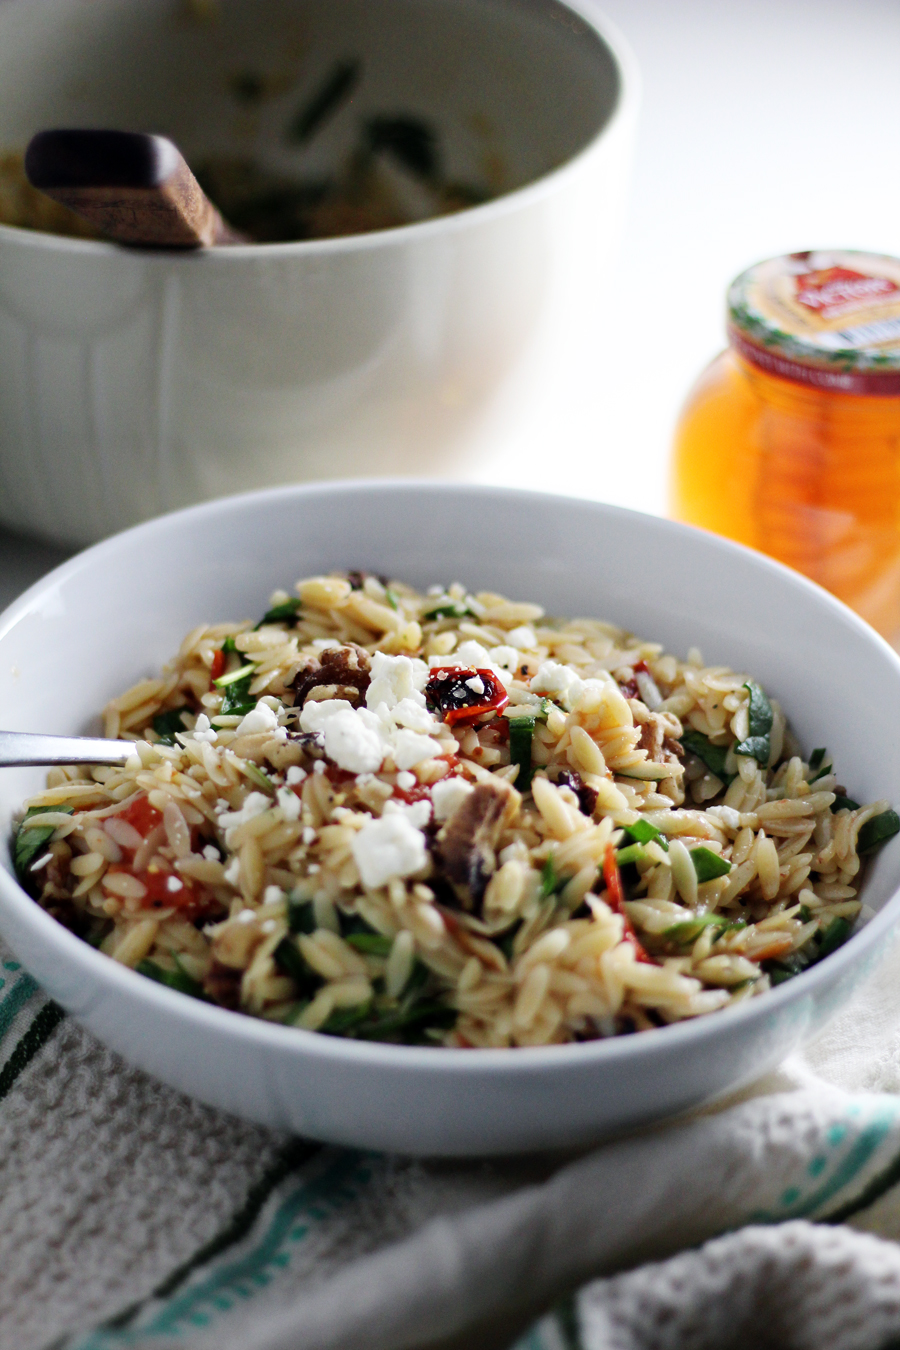 Orzo pasta tossed in a light honey-lemon dressing and roasted tomatoes